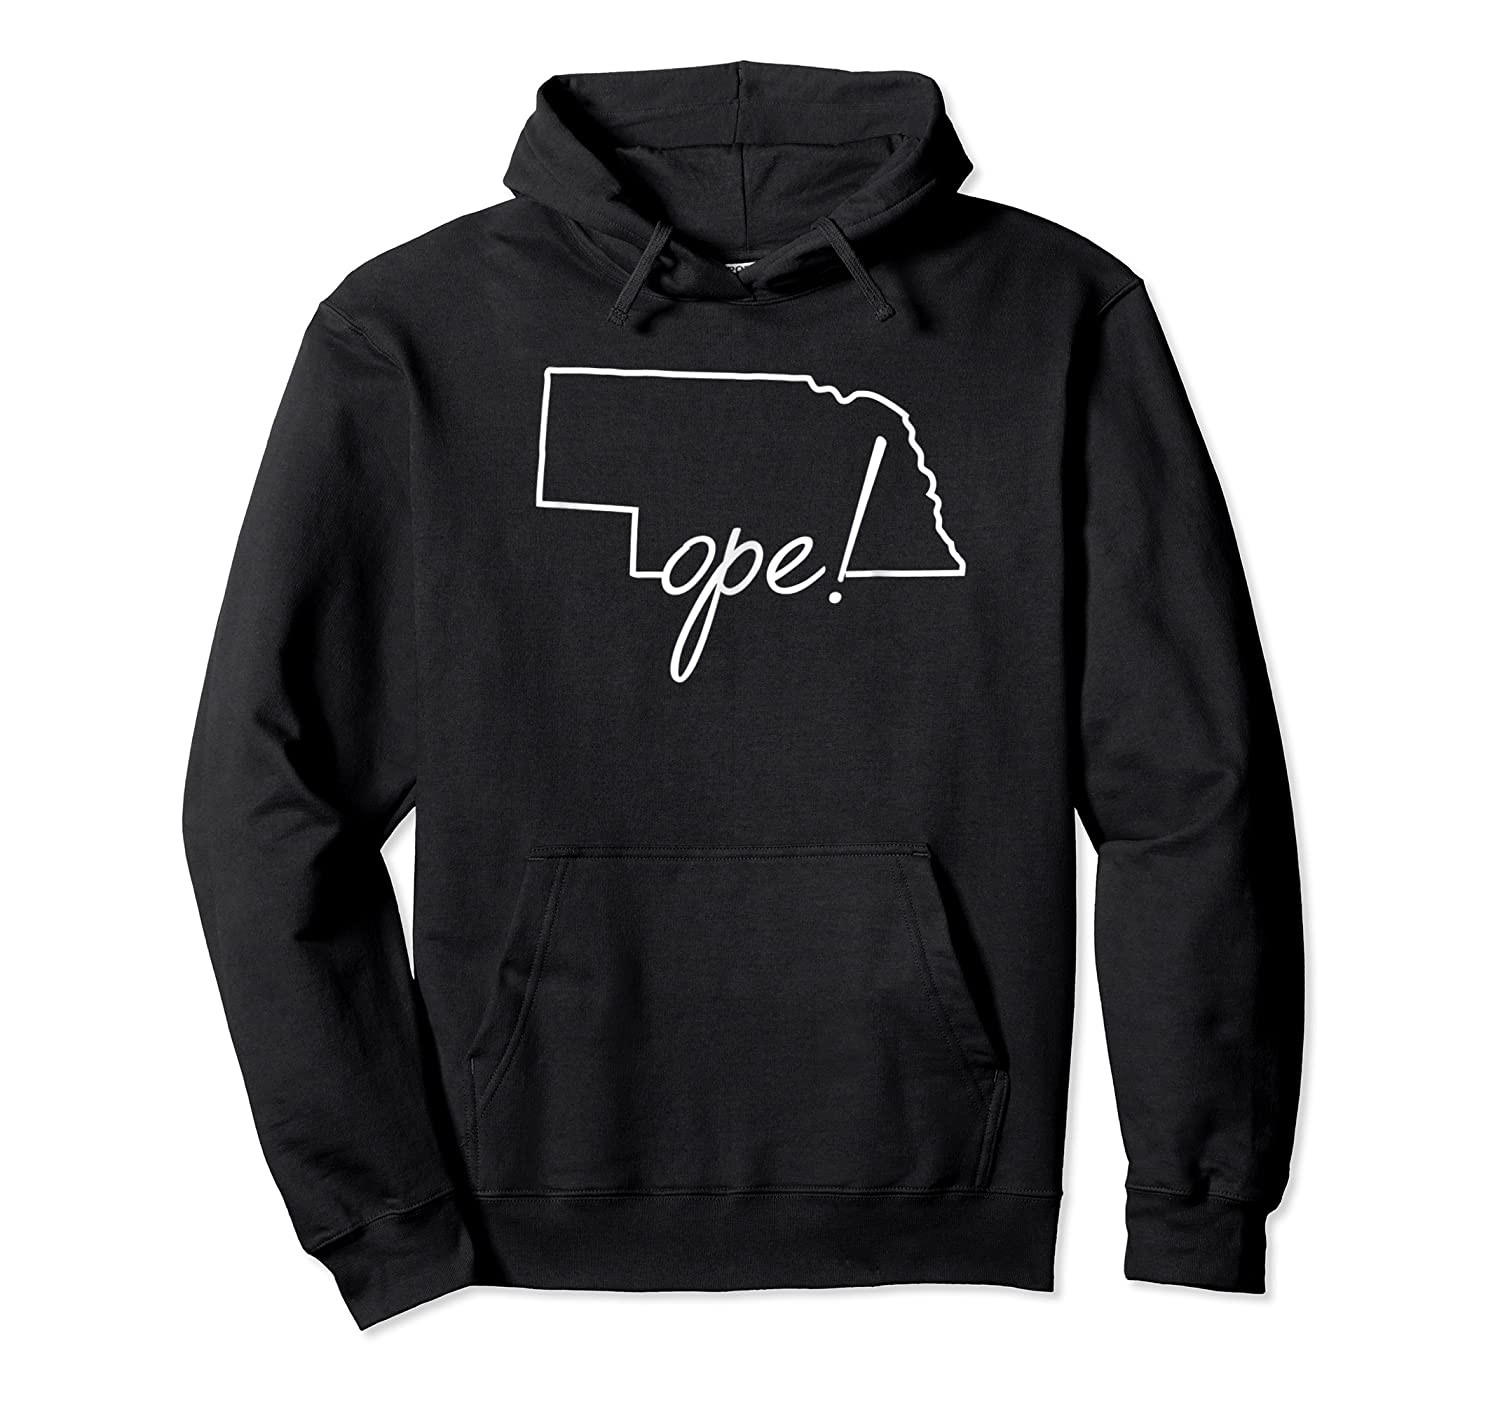 Ope Nebraska Shirt Funny Midwest Culture Phrase Saying Gift Unisex Pullover Hoodie